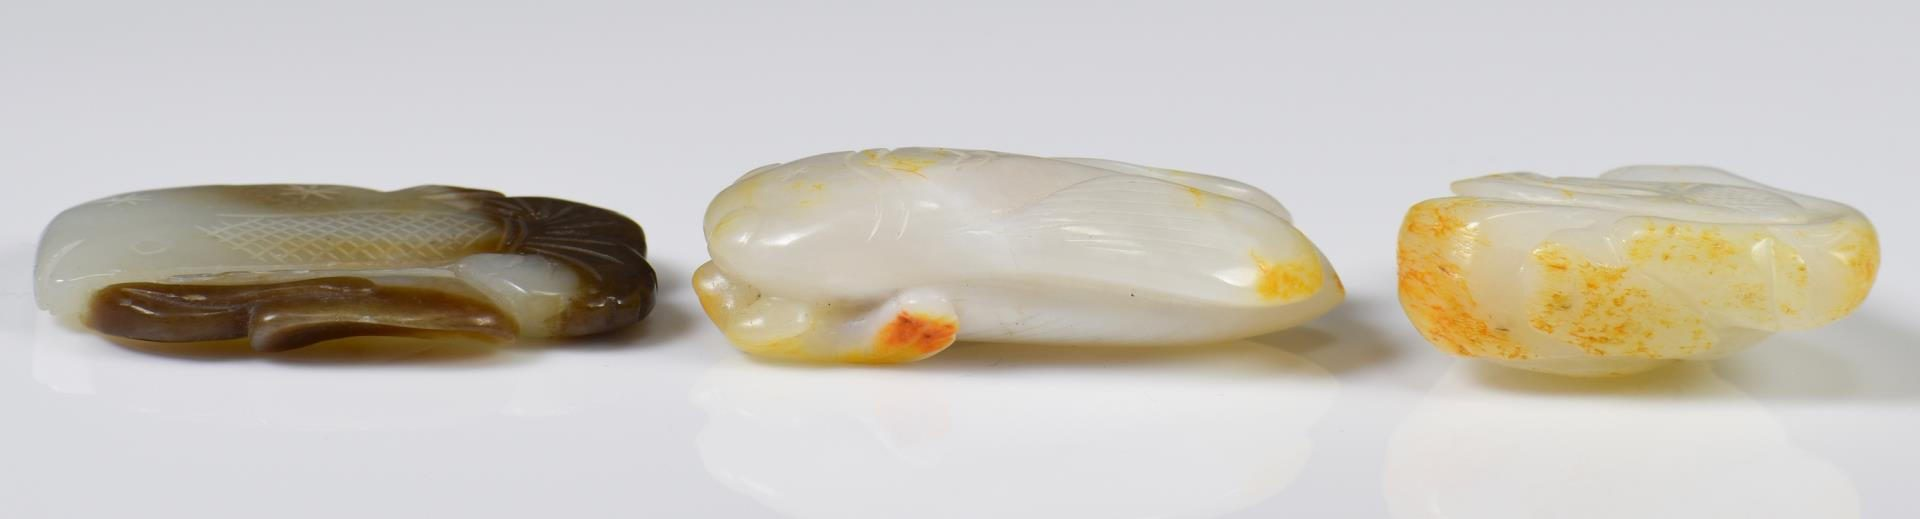 Lot 37: 3 Chinese Jade Carvings, Animal Forms